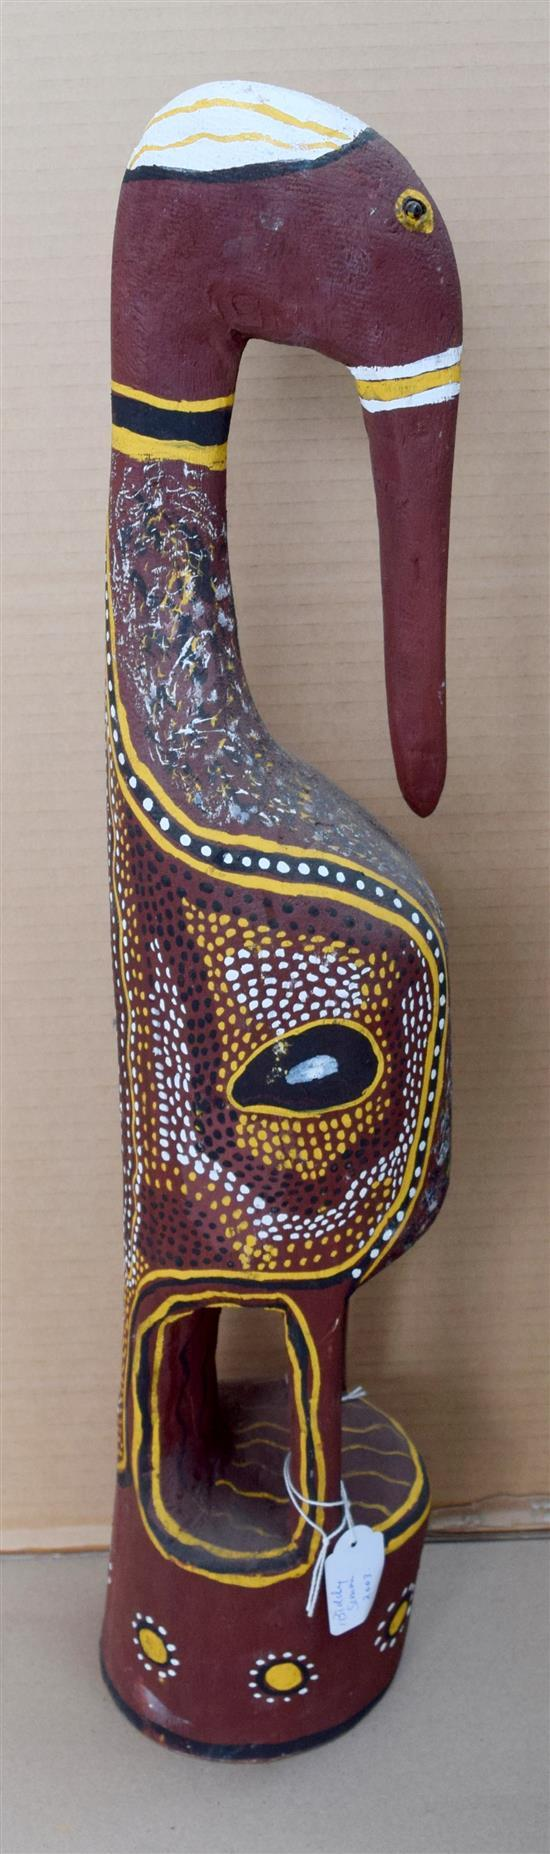 Biddy Simon 2003 Jabaroo natural earth pigments on carved wood